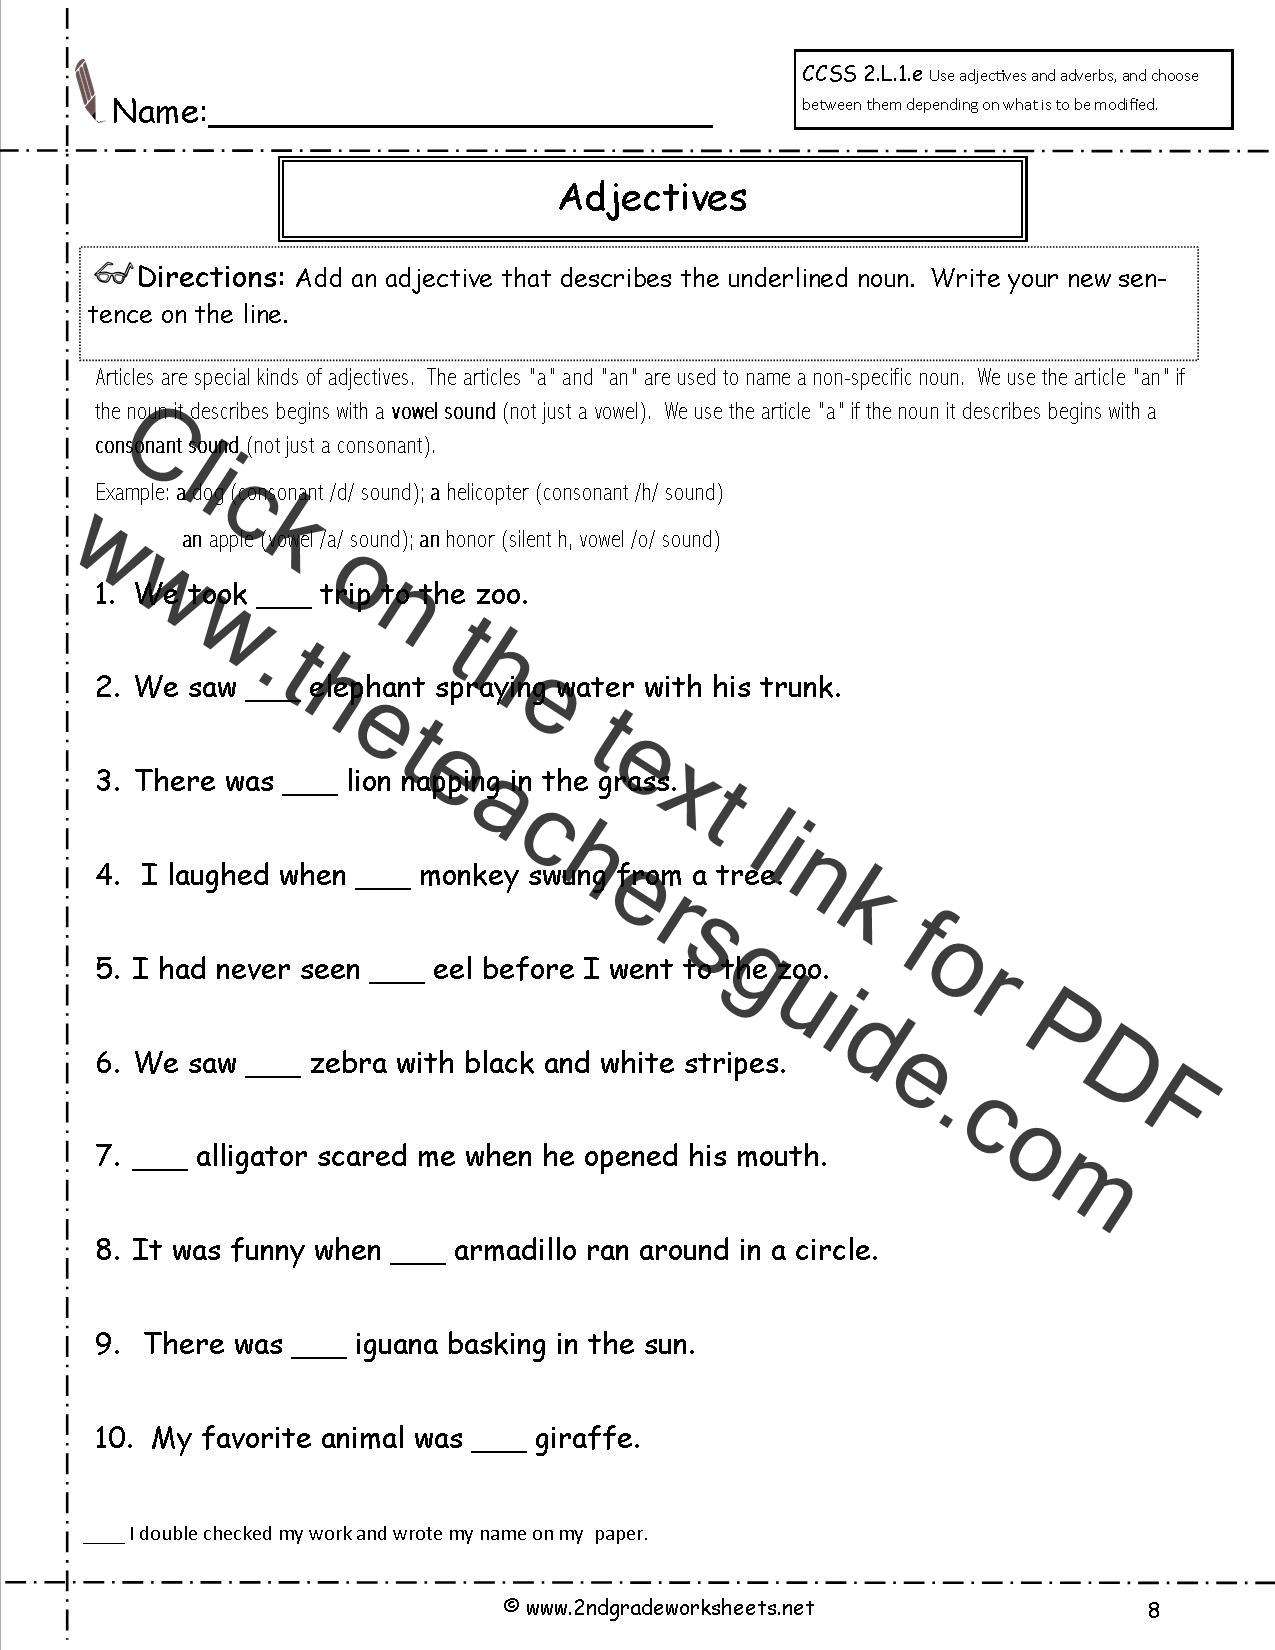 Worksheets 2nd Grade Worksheets free languagegrammar worksheets and printouts adjectives worksheets